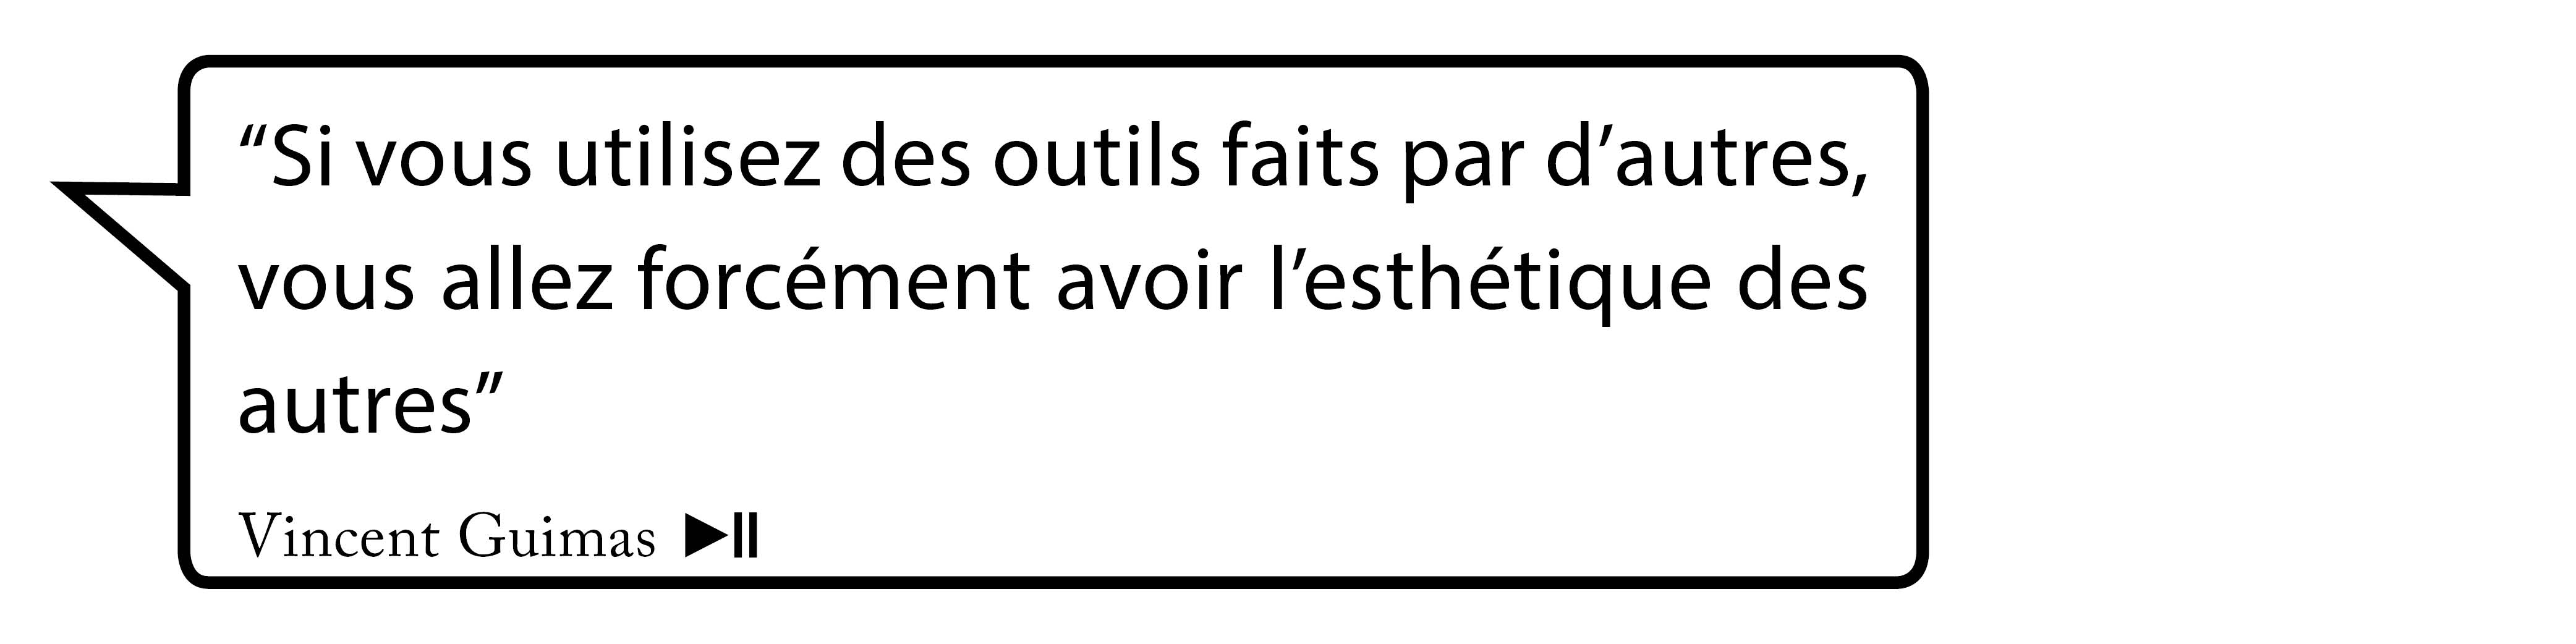 citationsblog8